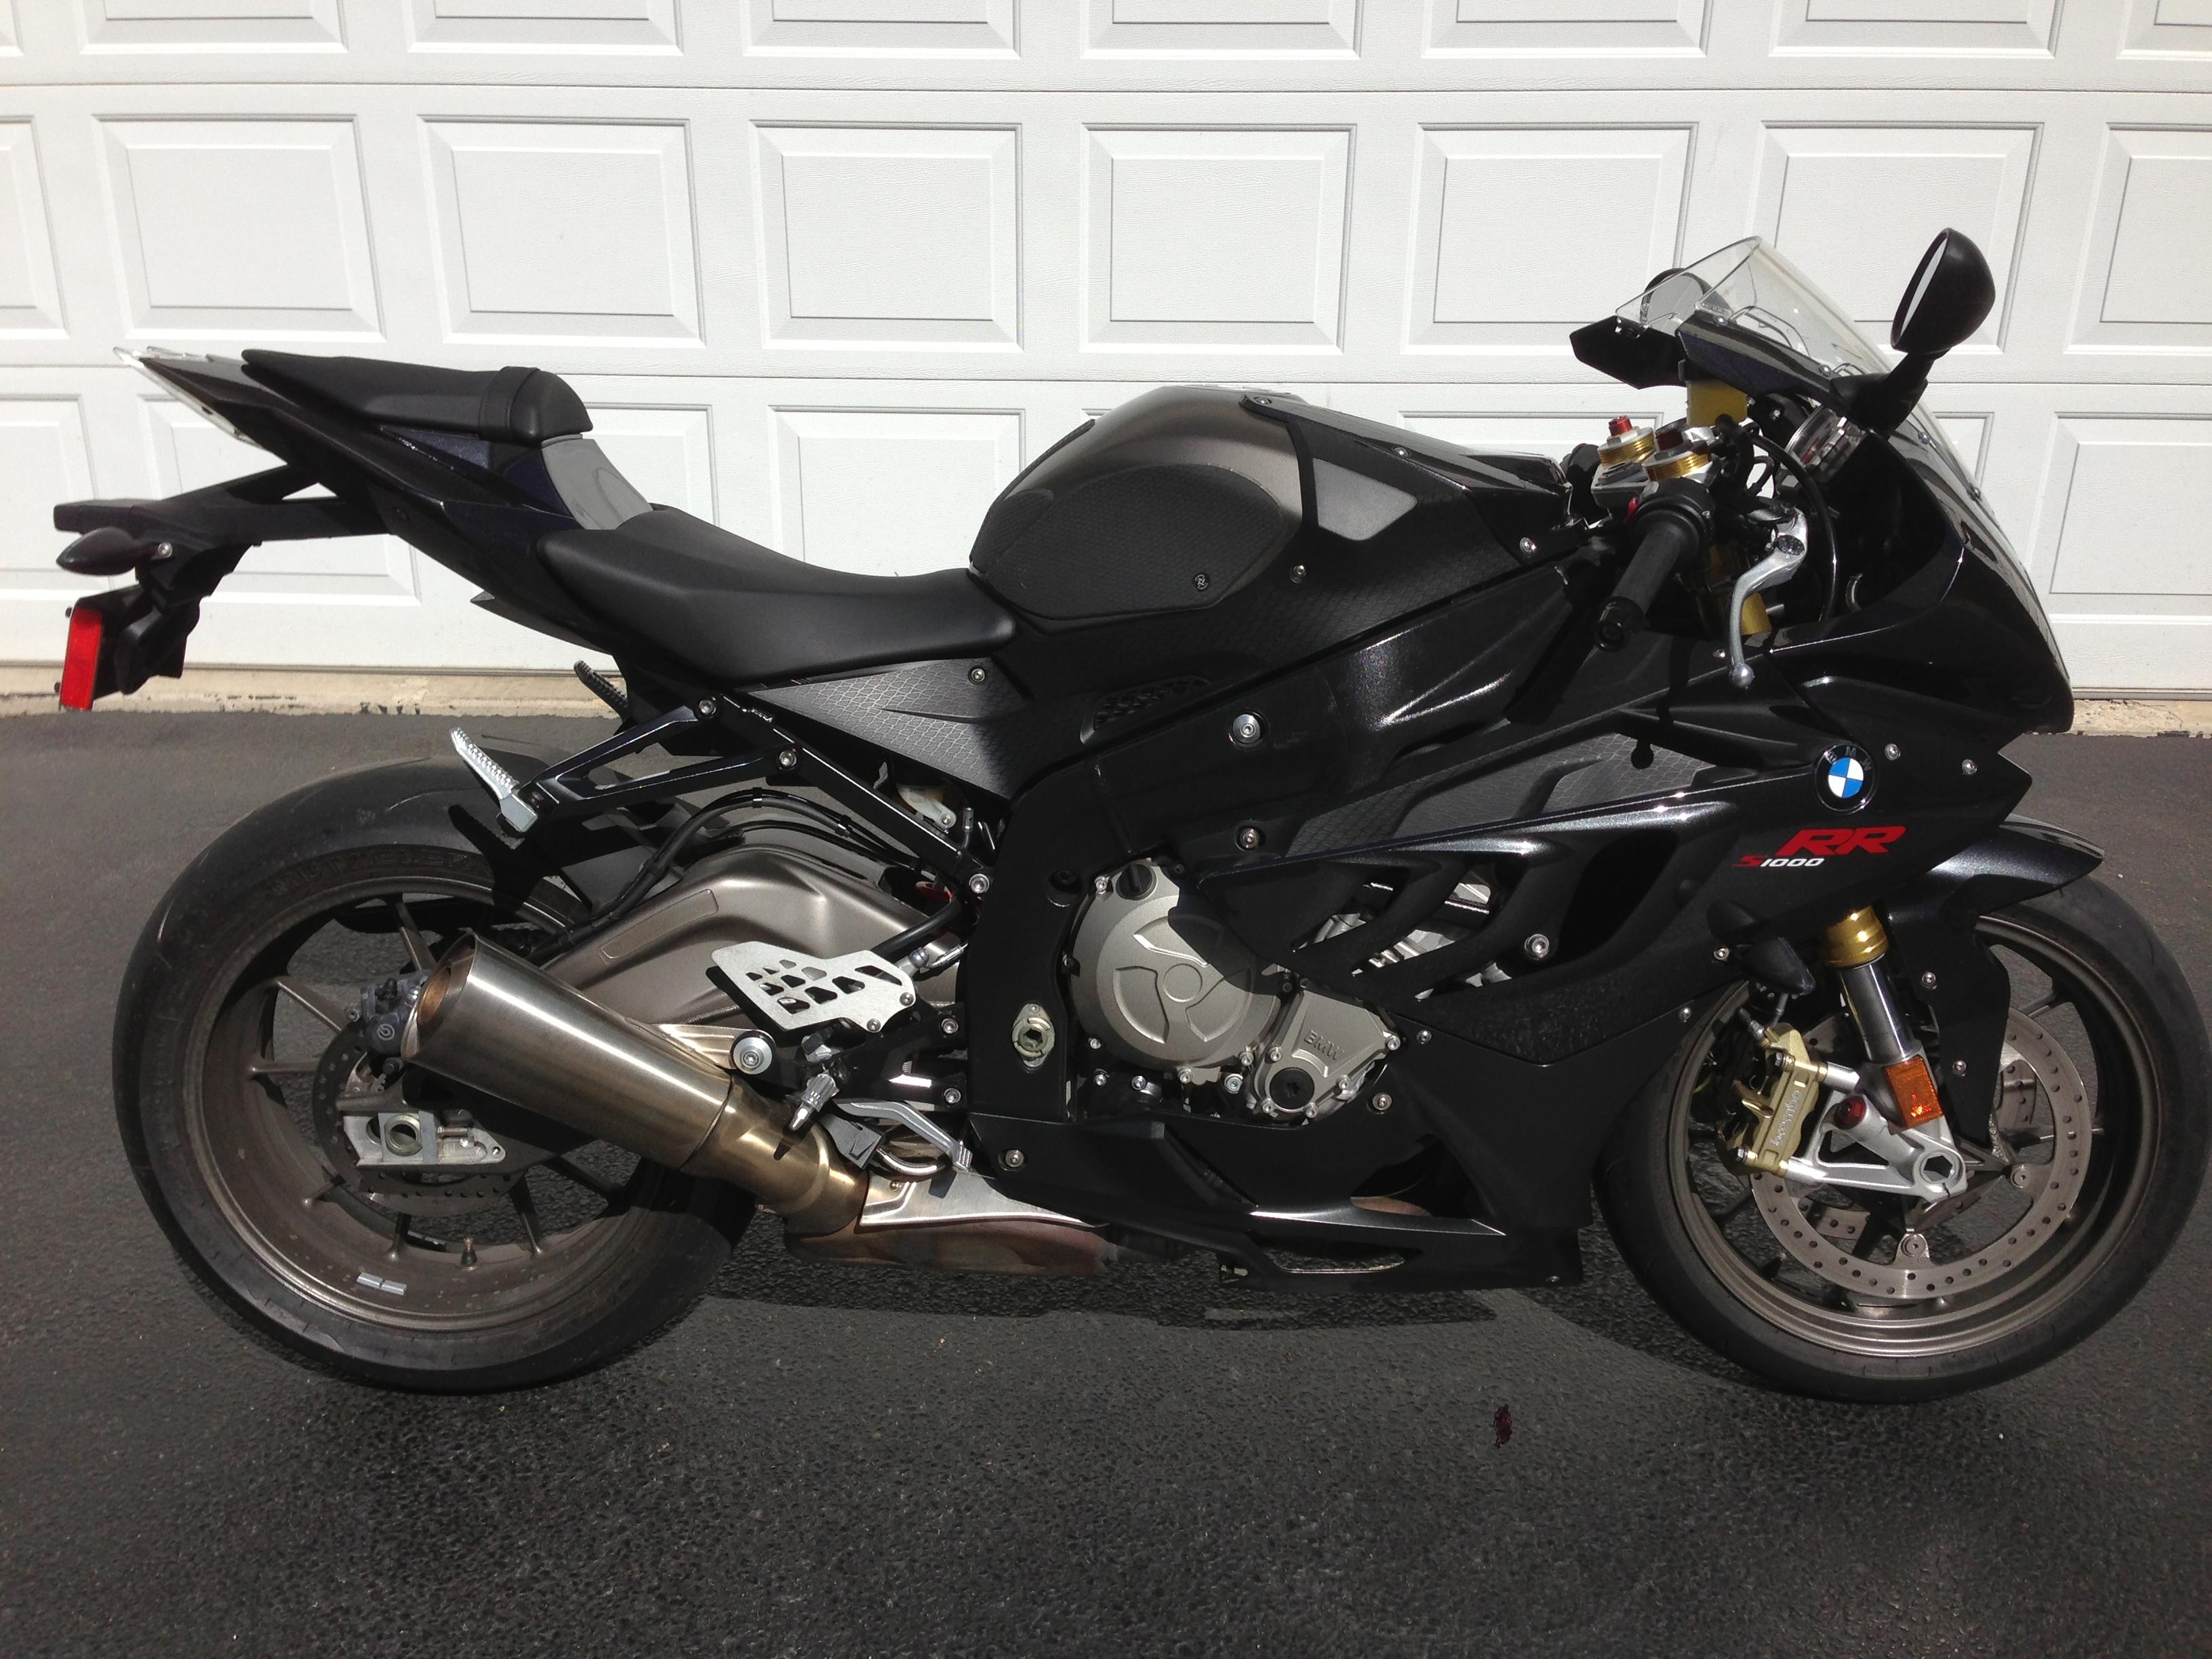 r installed sale so parts exhaust bkvkyin no le for silencer condition longer old titanium lower bmw forums forum excellent needed full to year shipped yoshimura miles xr